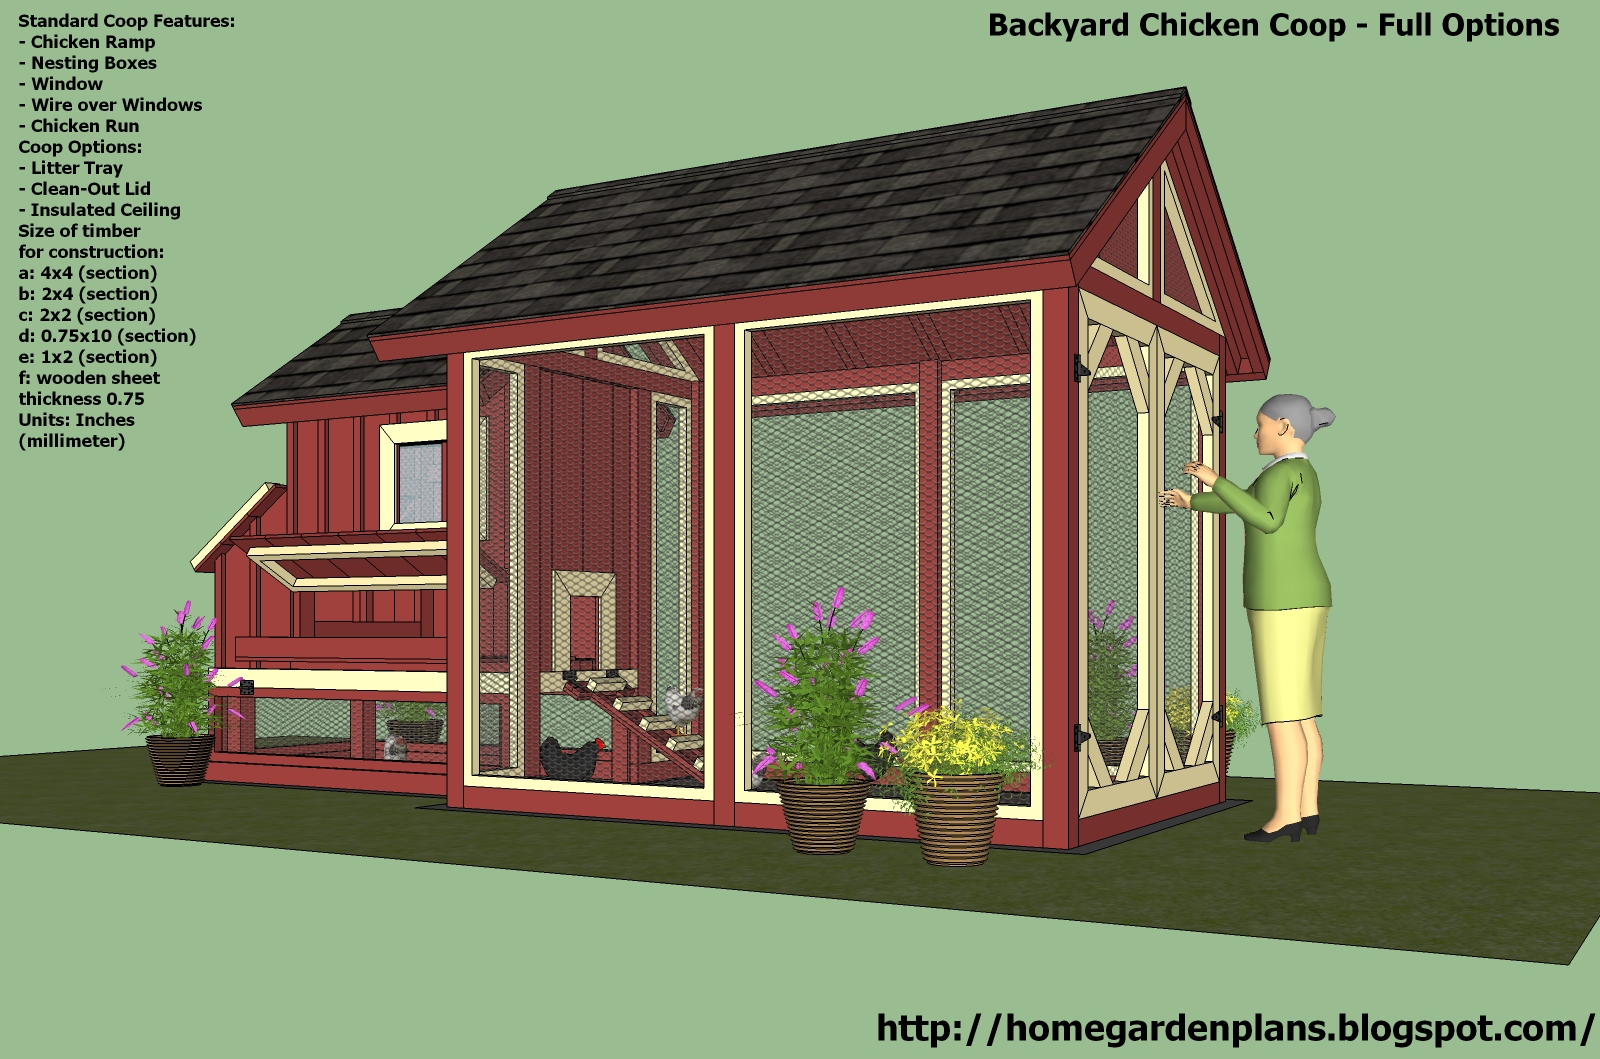 Home garden plans s101 chicken coop plans construction for Free coop plans